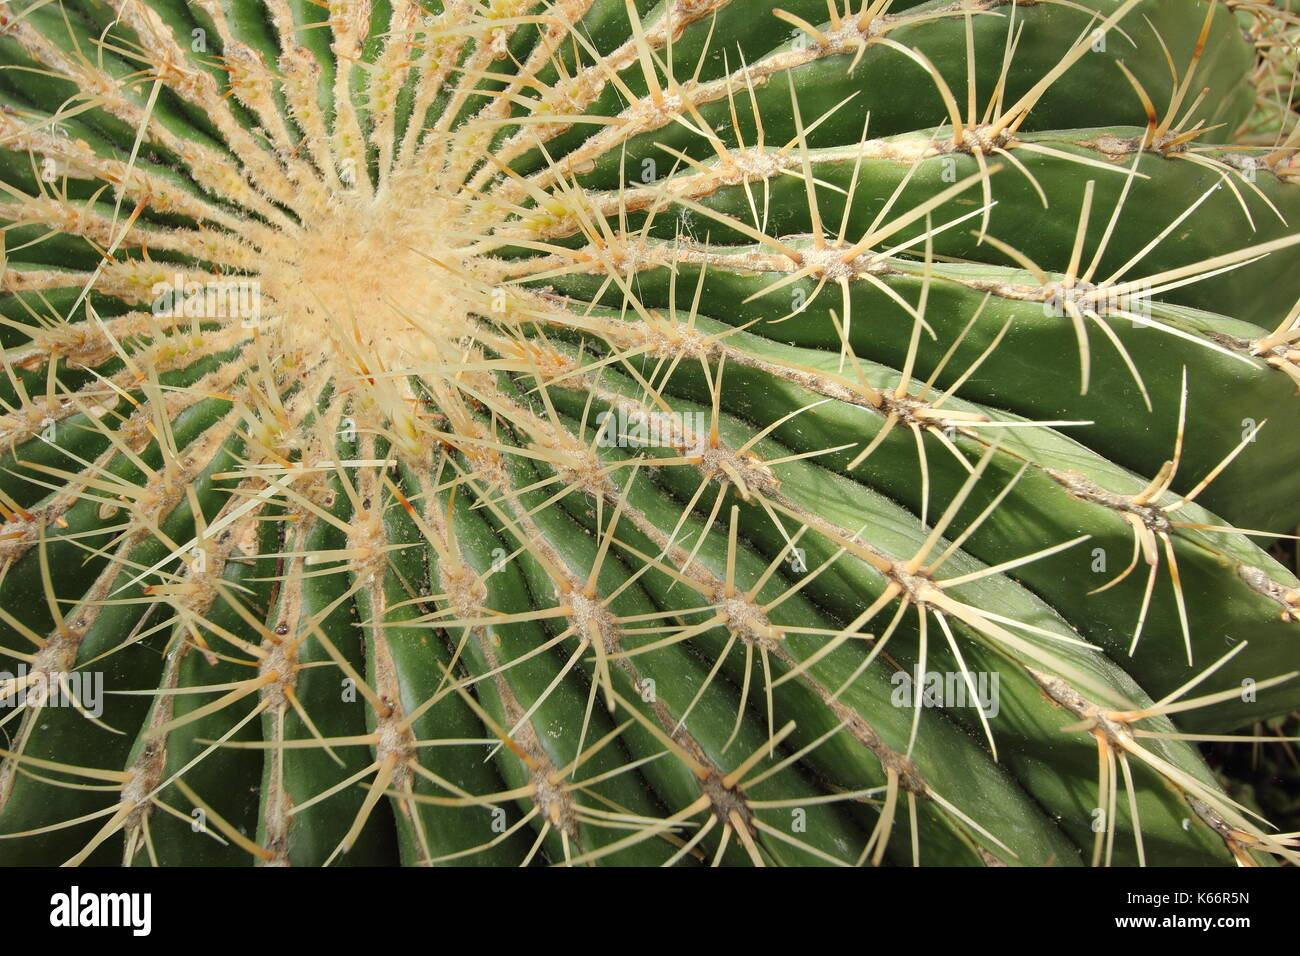 The ribs and spines of a mature Barrel cactus (Ferocactus glaucescens) growing under glass in the UK - Stock Image